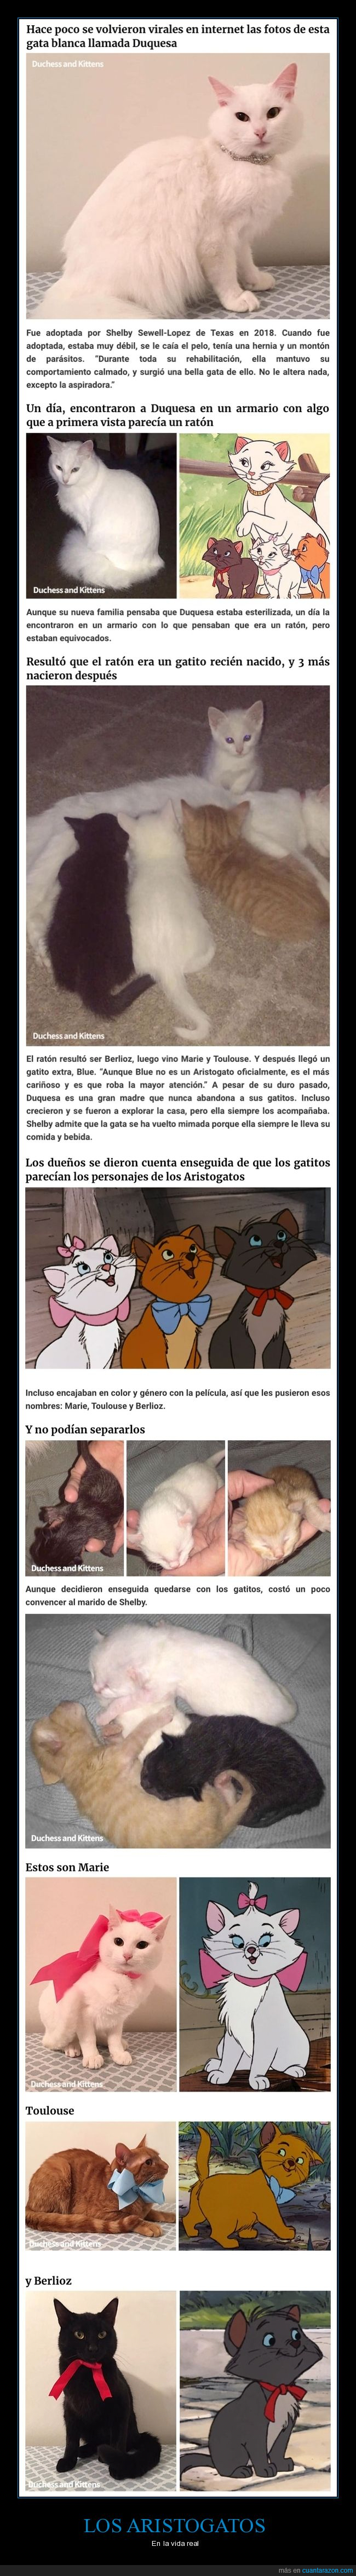 aristogatos,gatos,parecidos